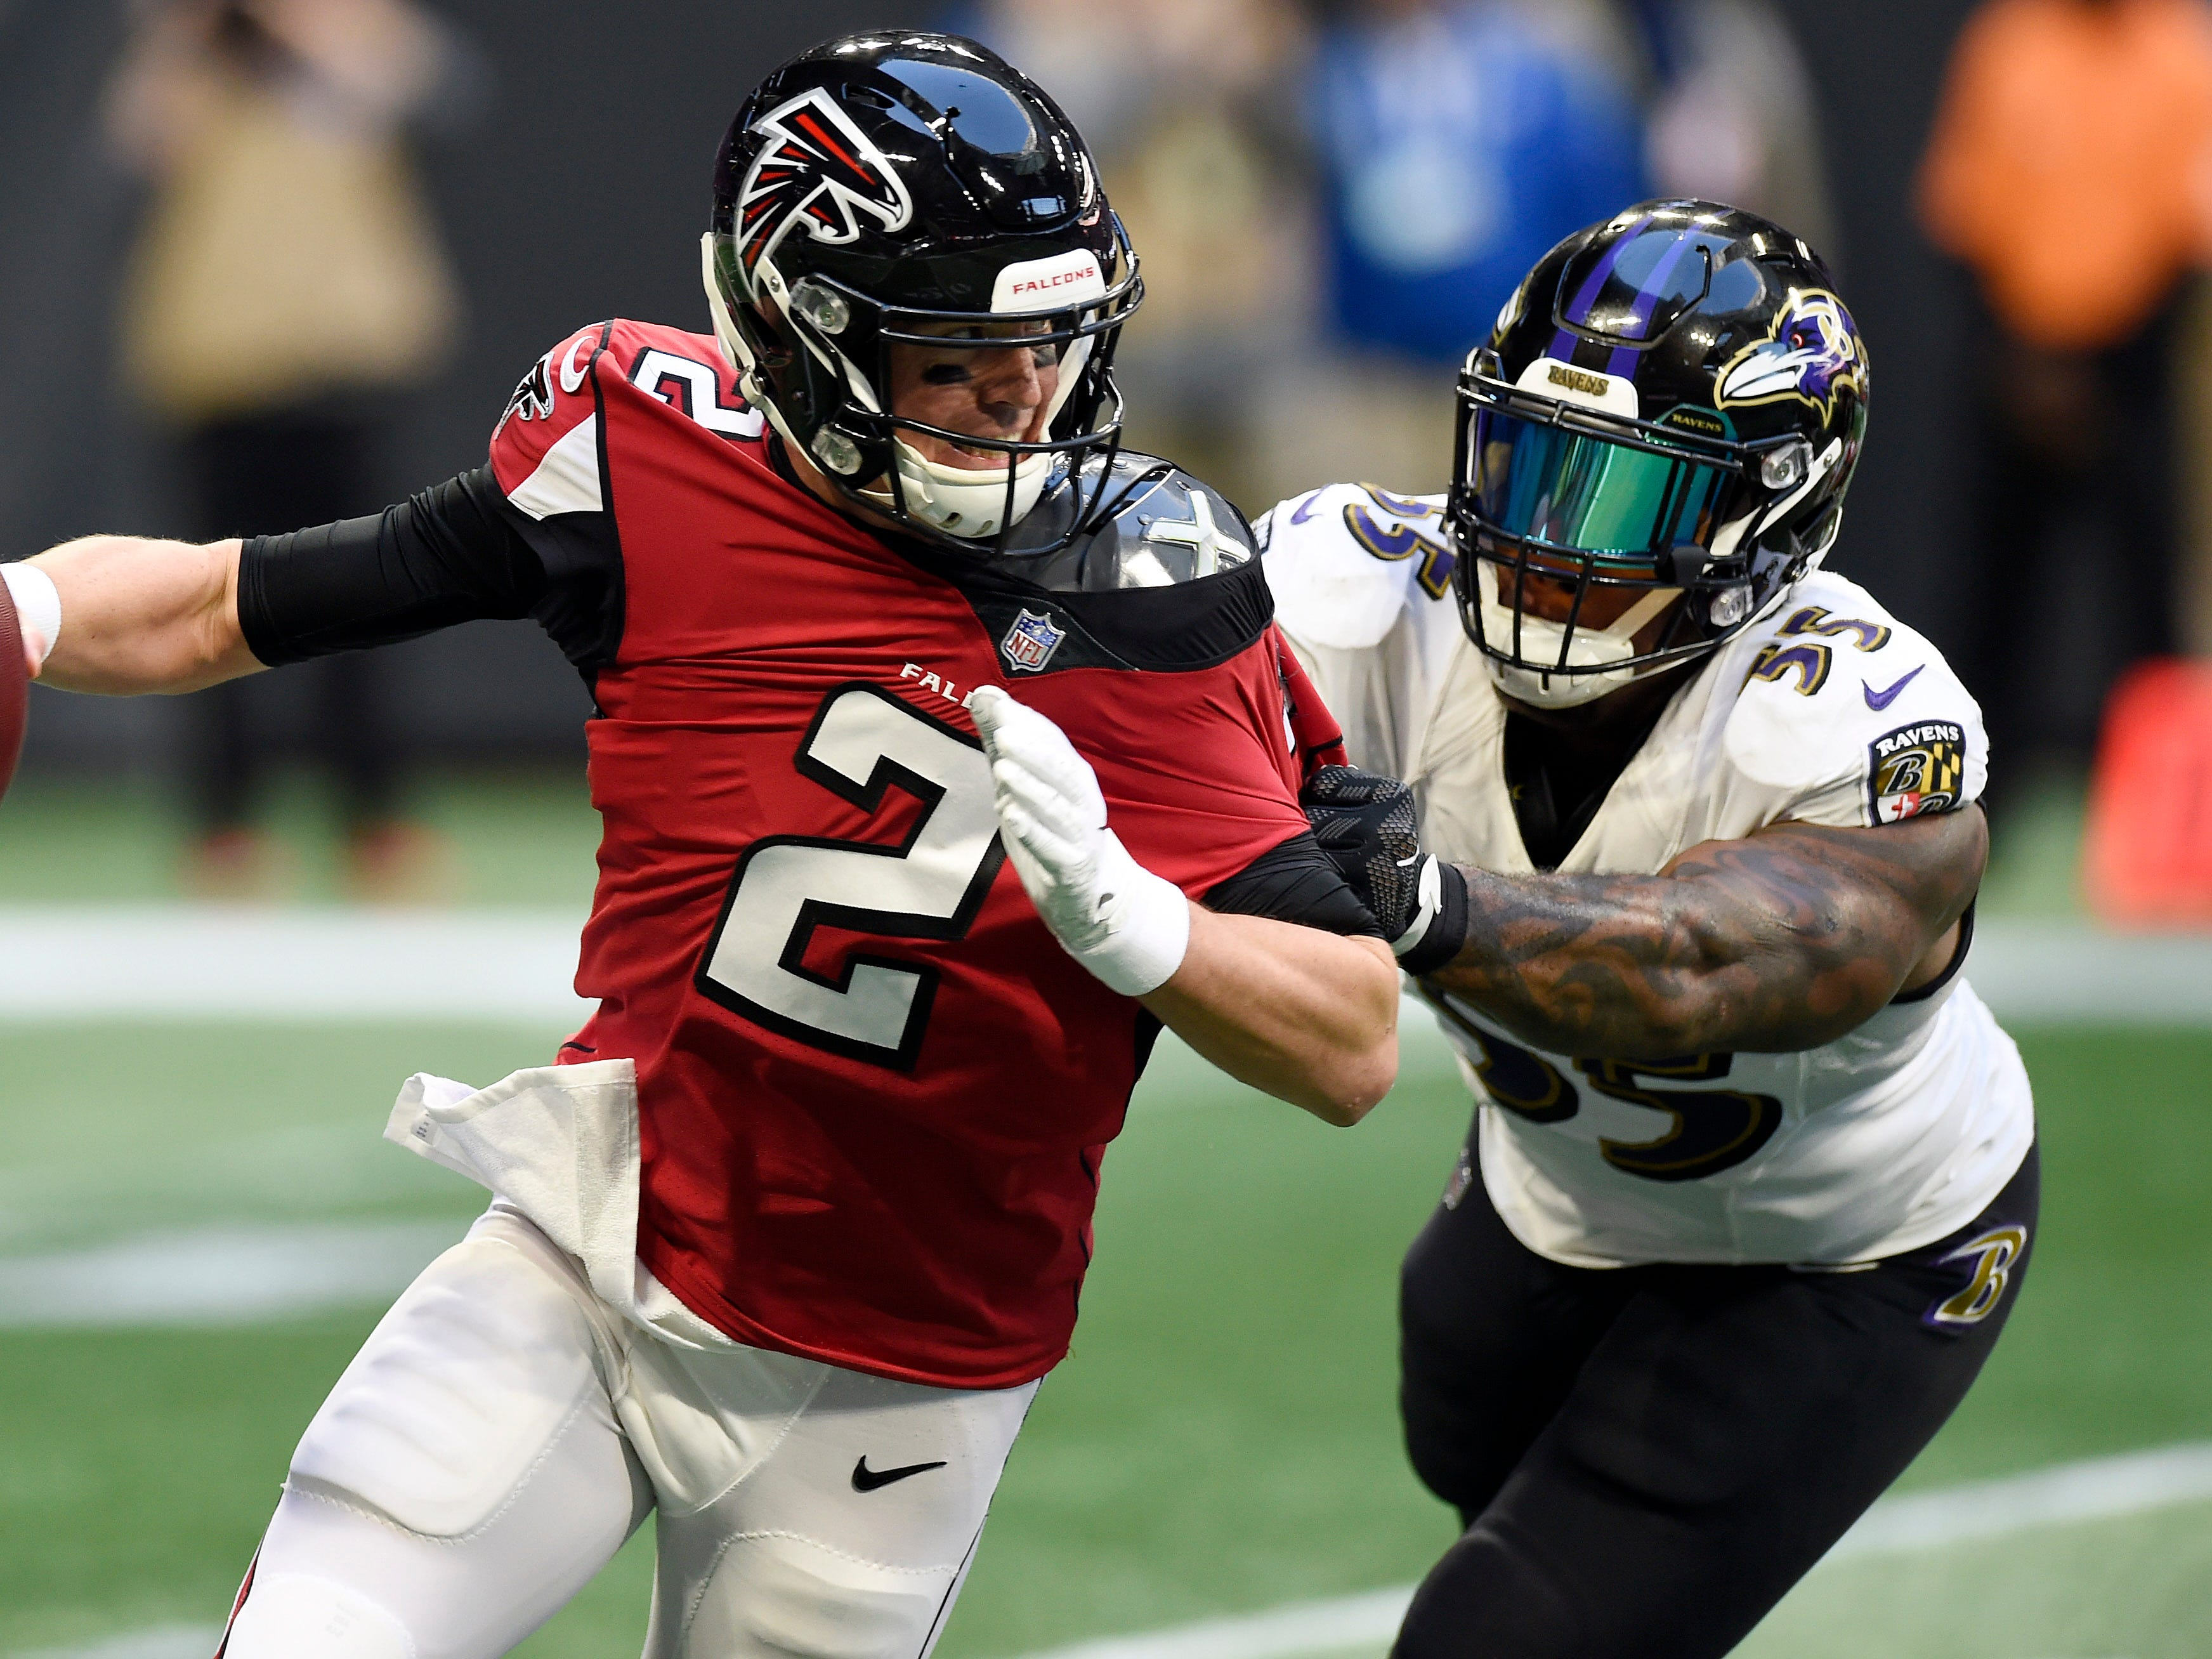 Atlanta Falcons quarterback Matt Ryan (2) scrambles out of the pocket under pressure from Baltimore Ravens outside linebacker Terrell Suggs (55) during the first quarter at Mercedes-Benz Stadium.